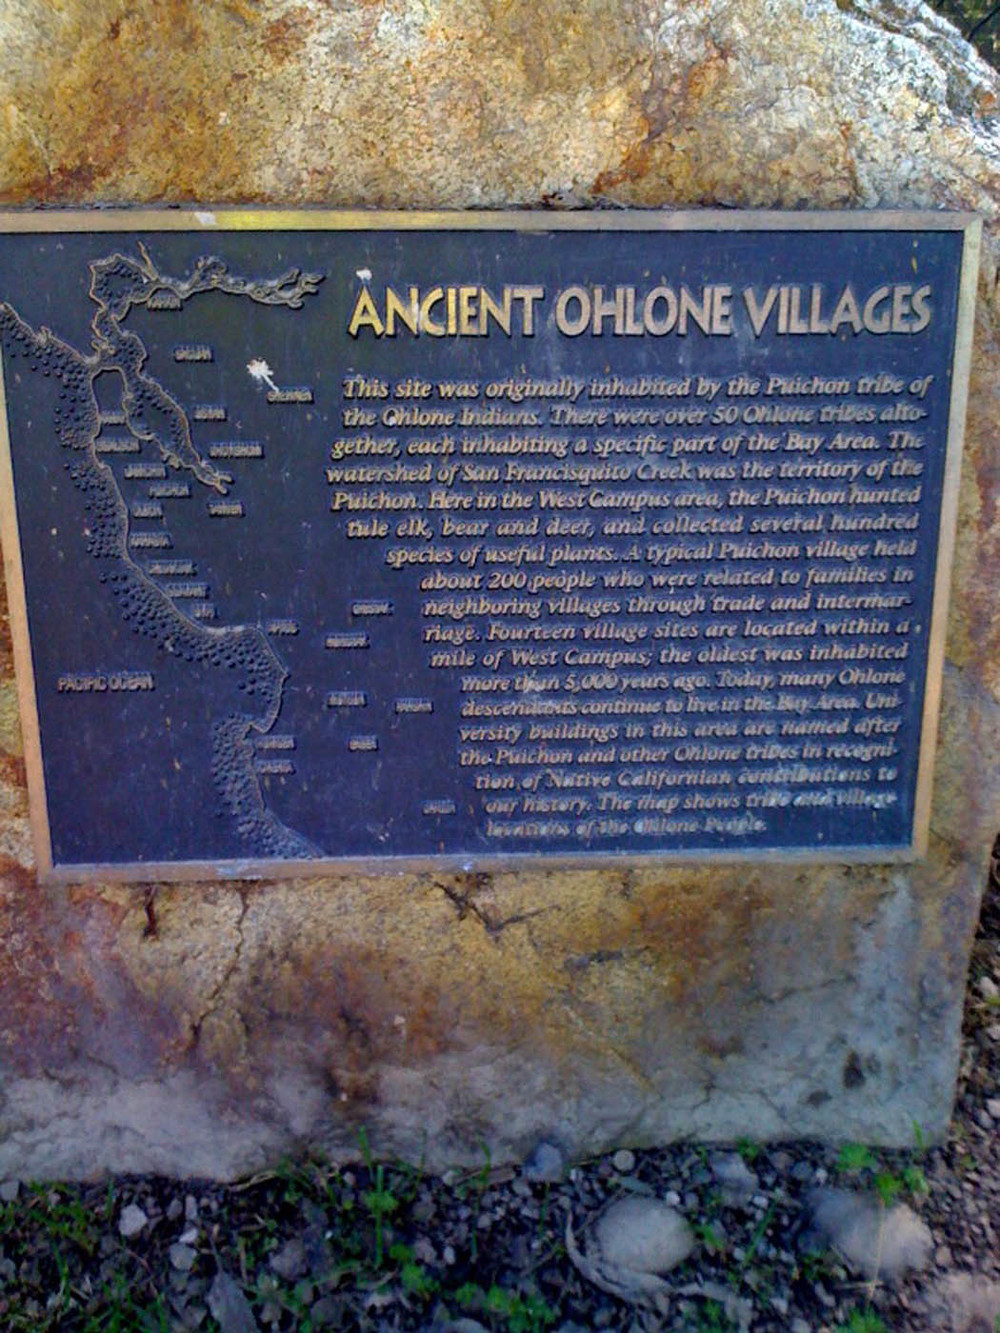 Ohlone villages_web.jpg